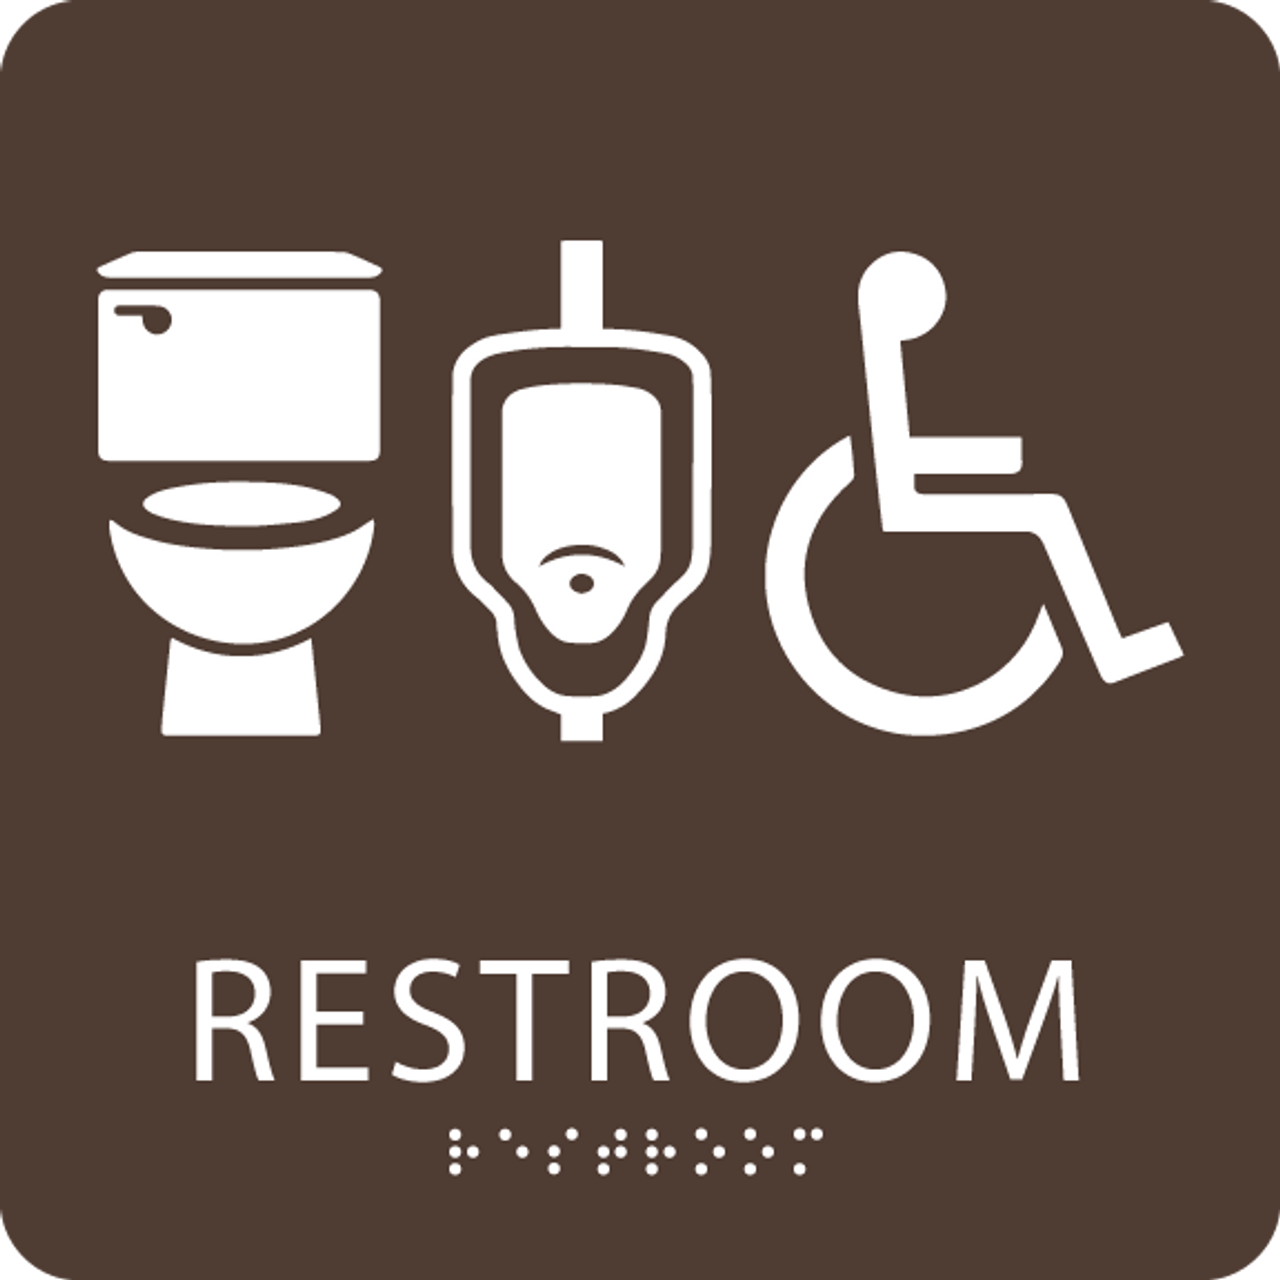 Brown restroom sign